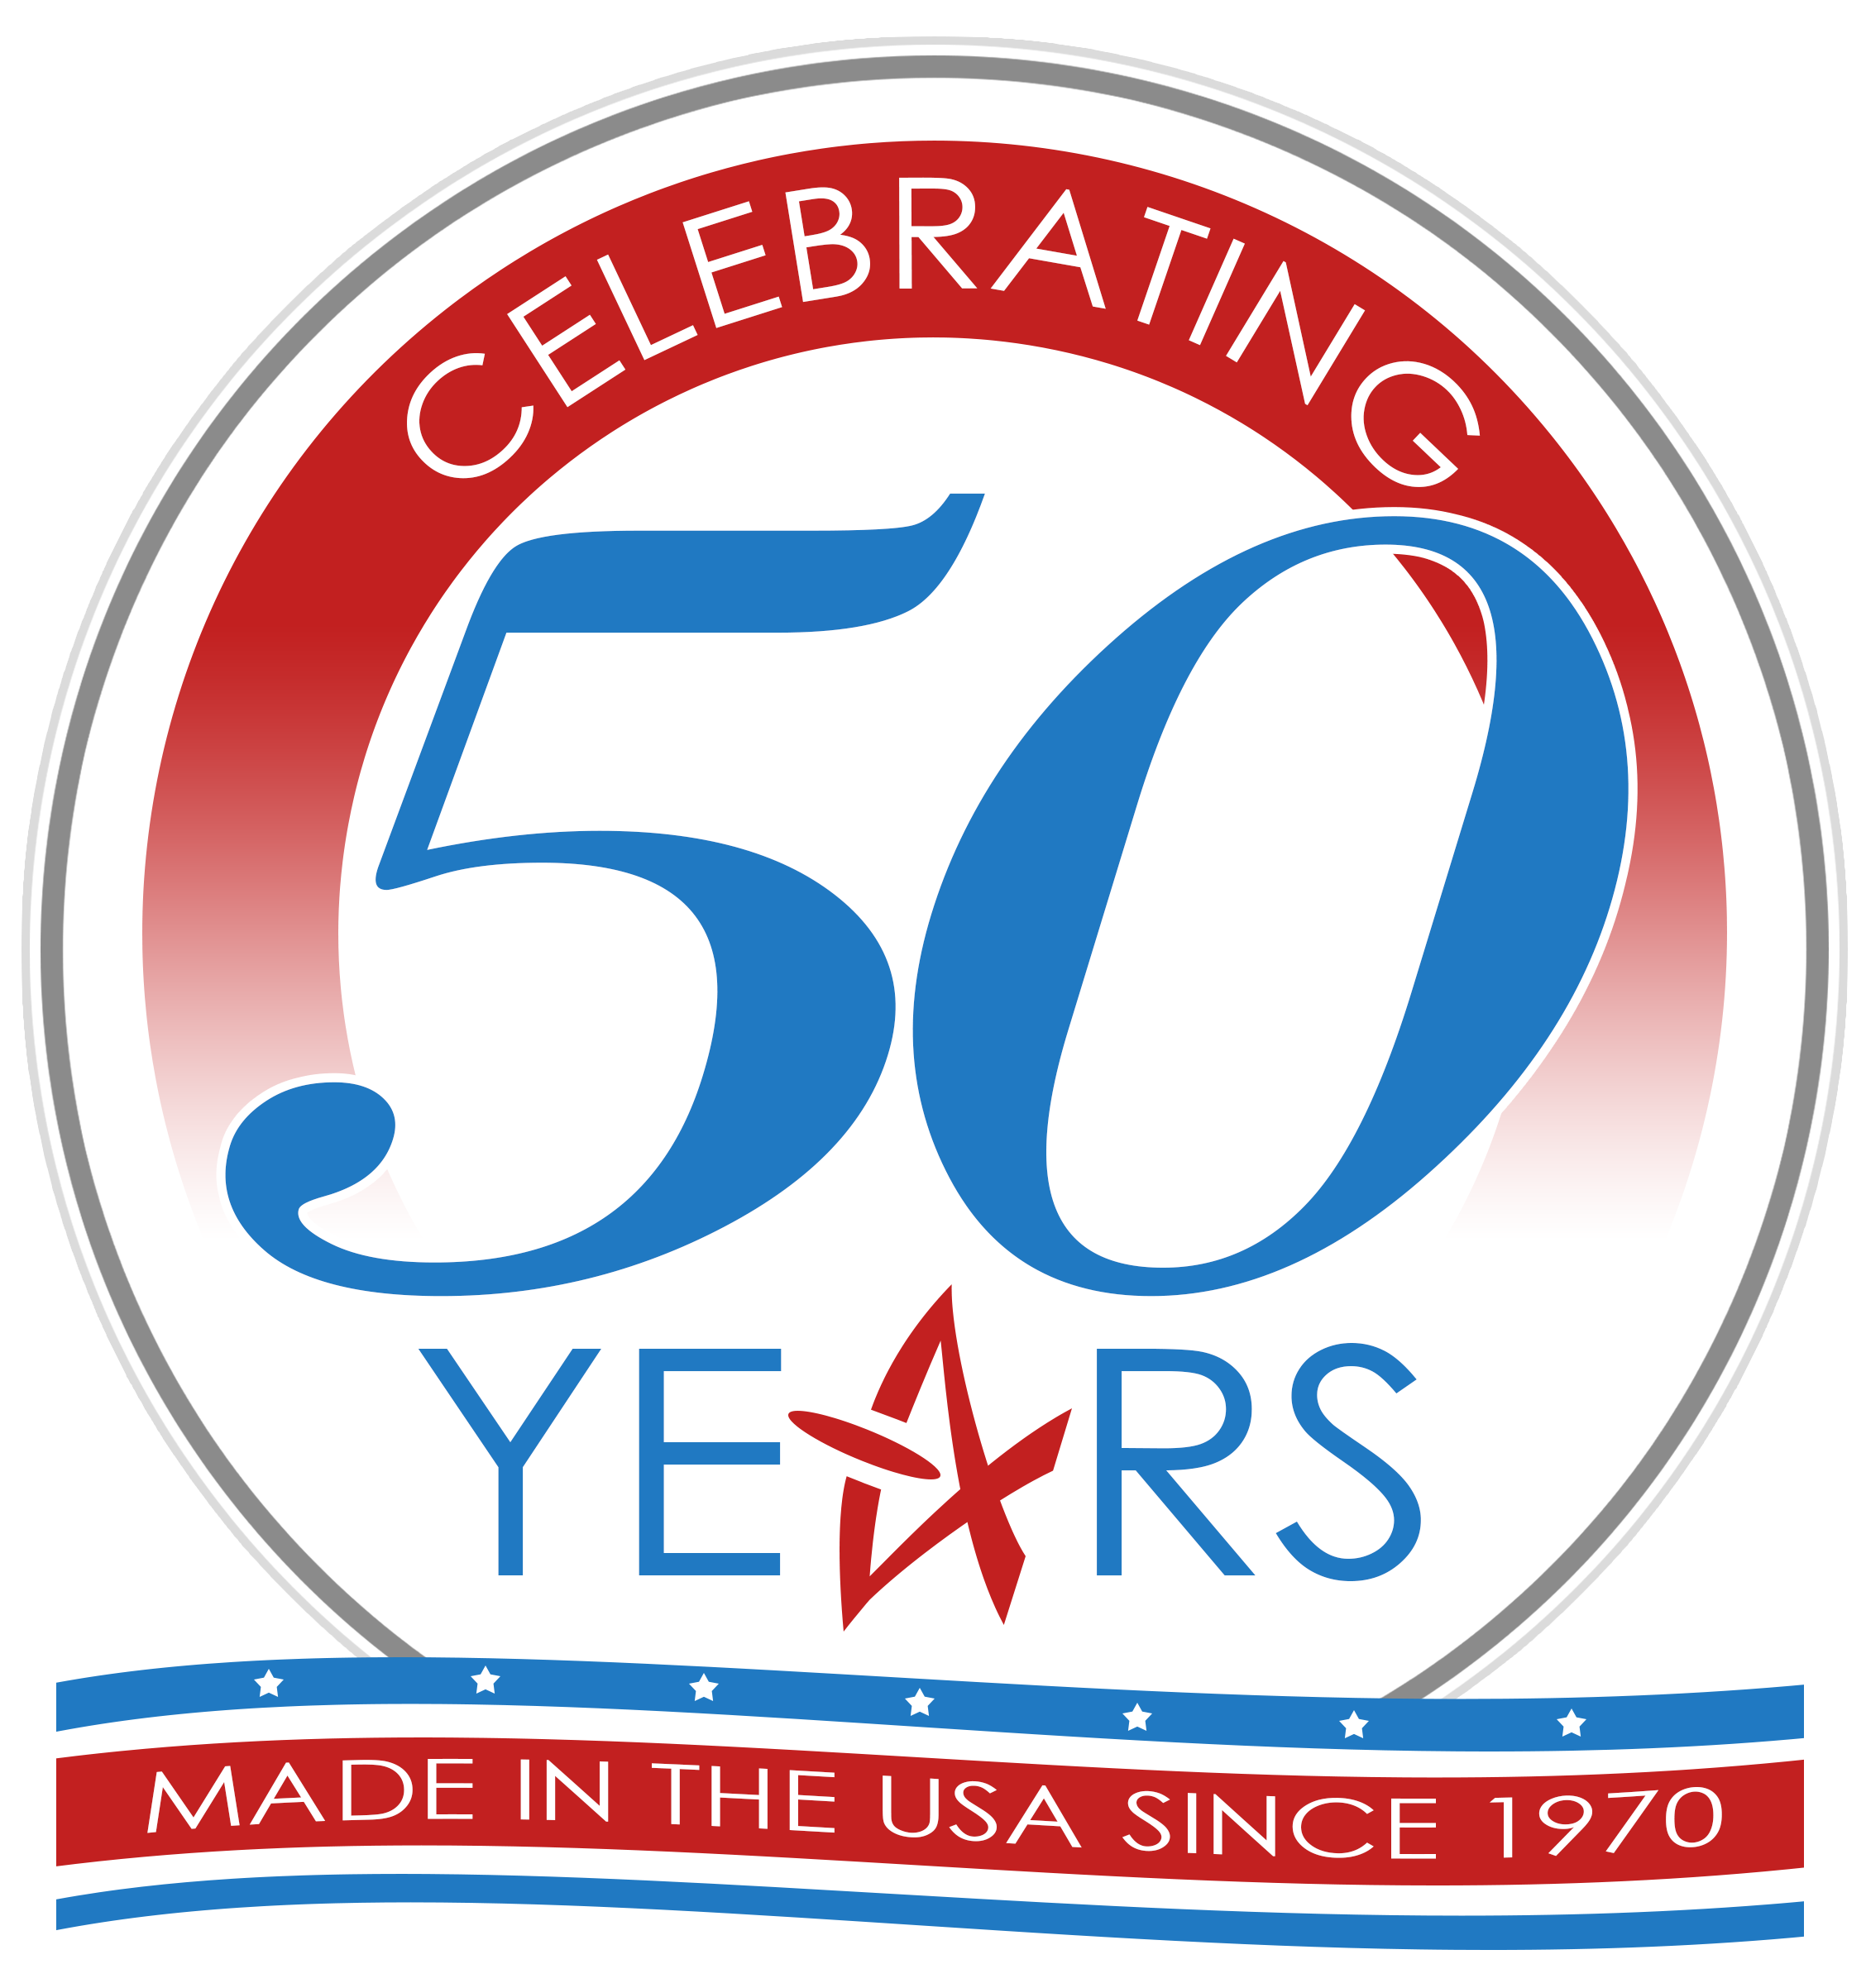 celly-50-year-logo.png